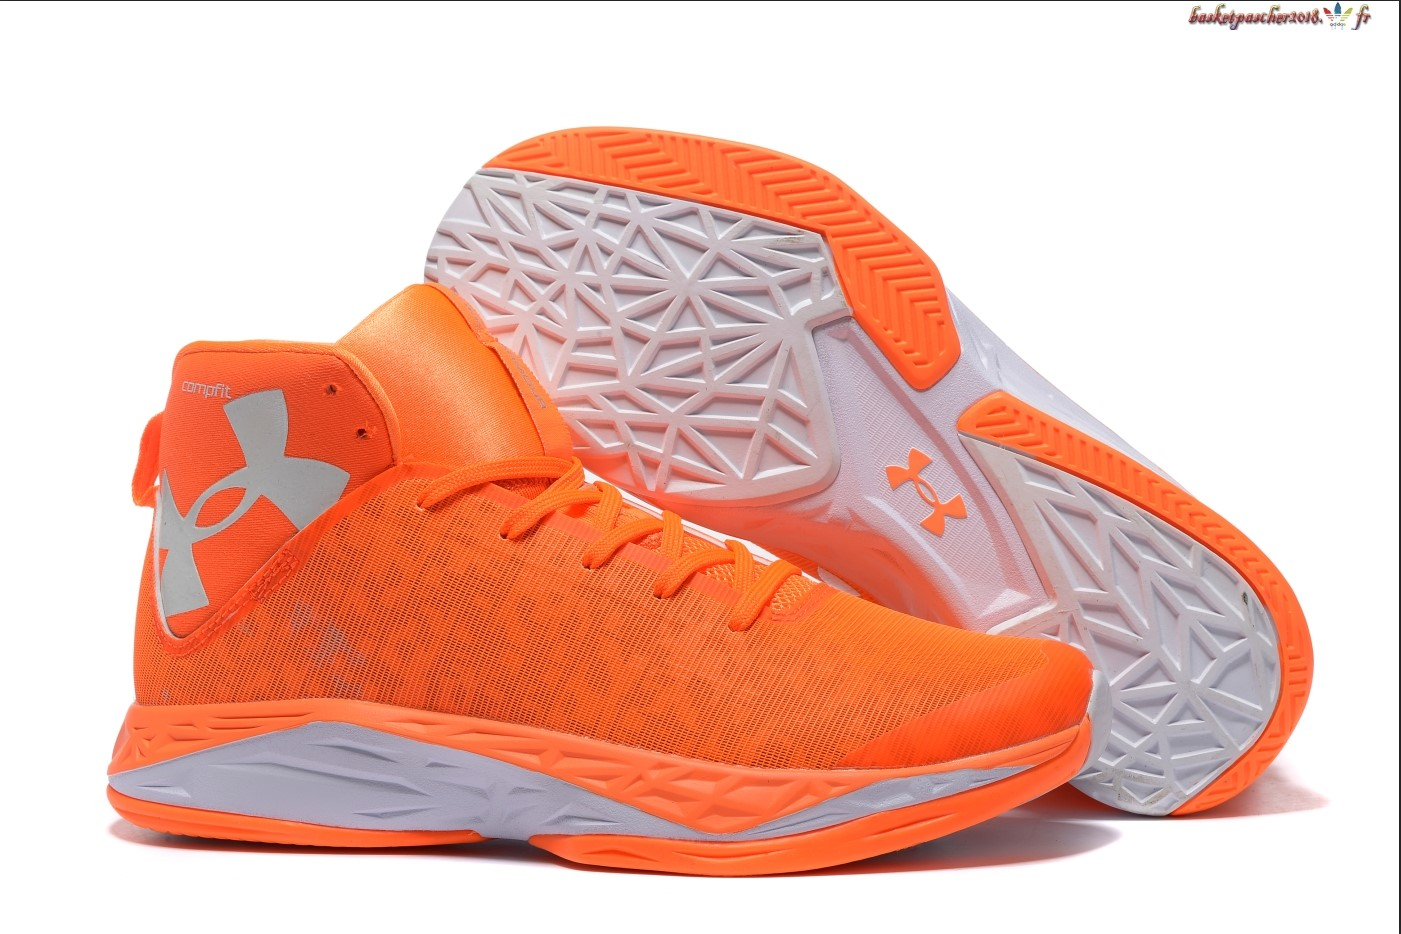 Vente Chaude Chaussures De Basketball Homme Stephen Curry 6 Orange Pas Cher